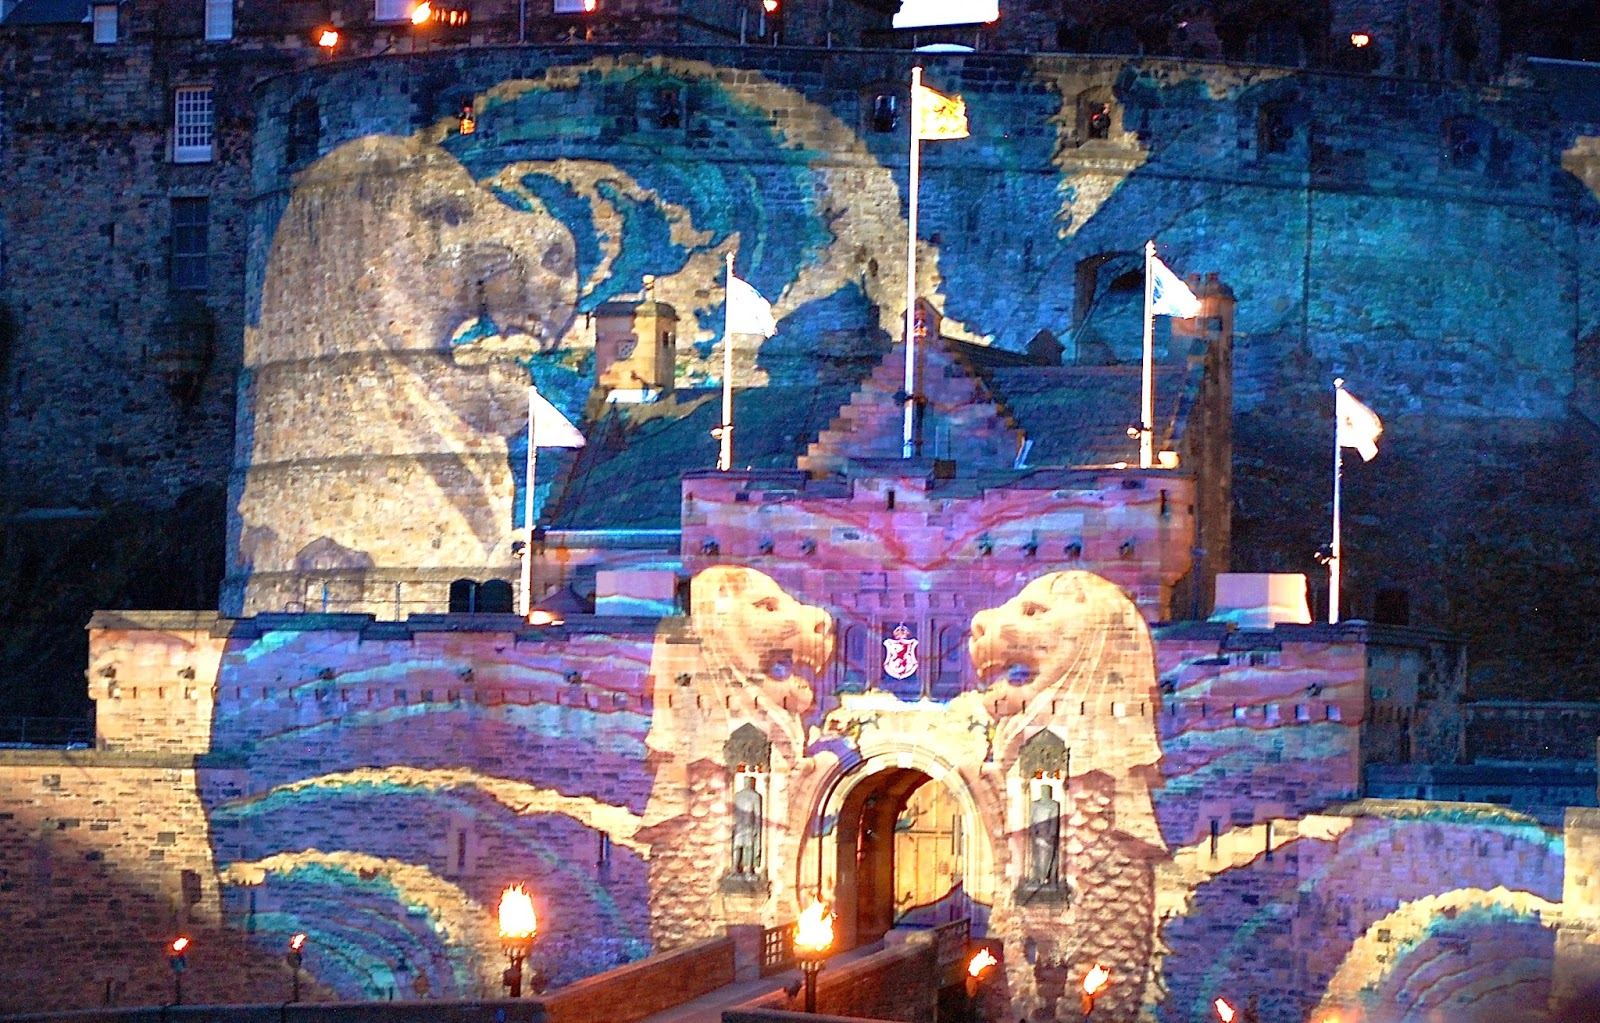 Son et lumiere at Royal Edinburgh Military Tattoo